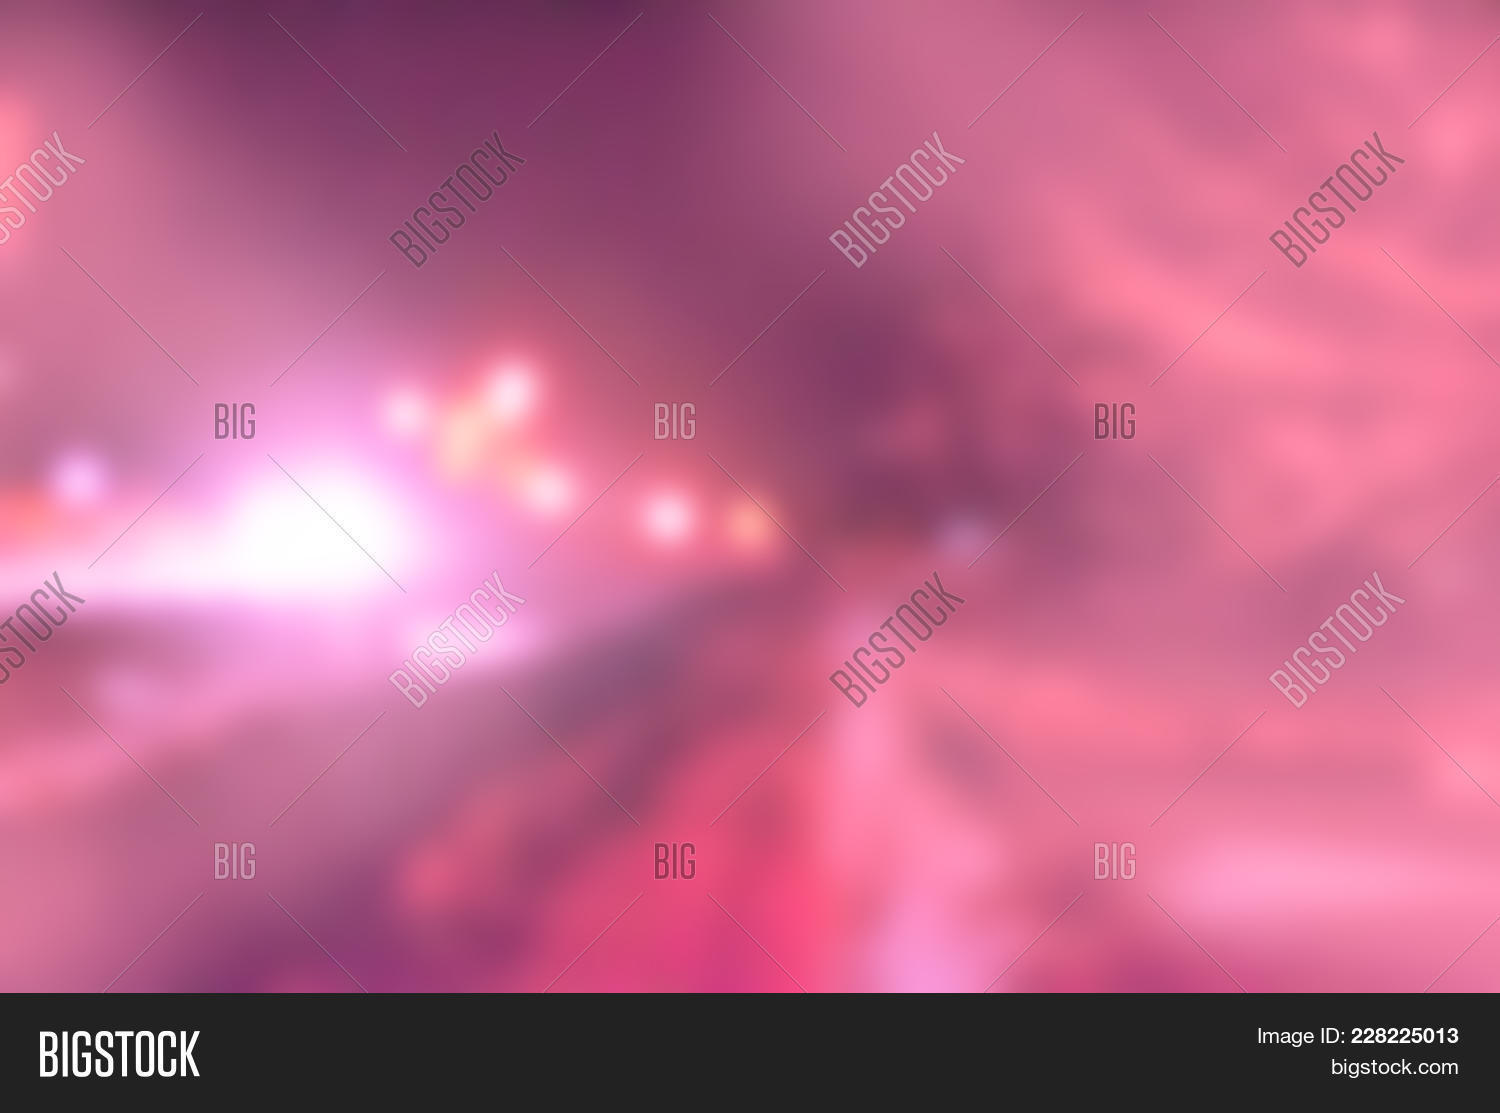 Pastel Pink Powerpoint Template Pastel Pink Powerpoint Background